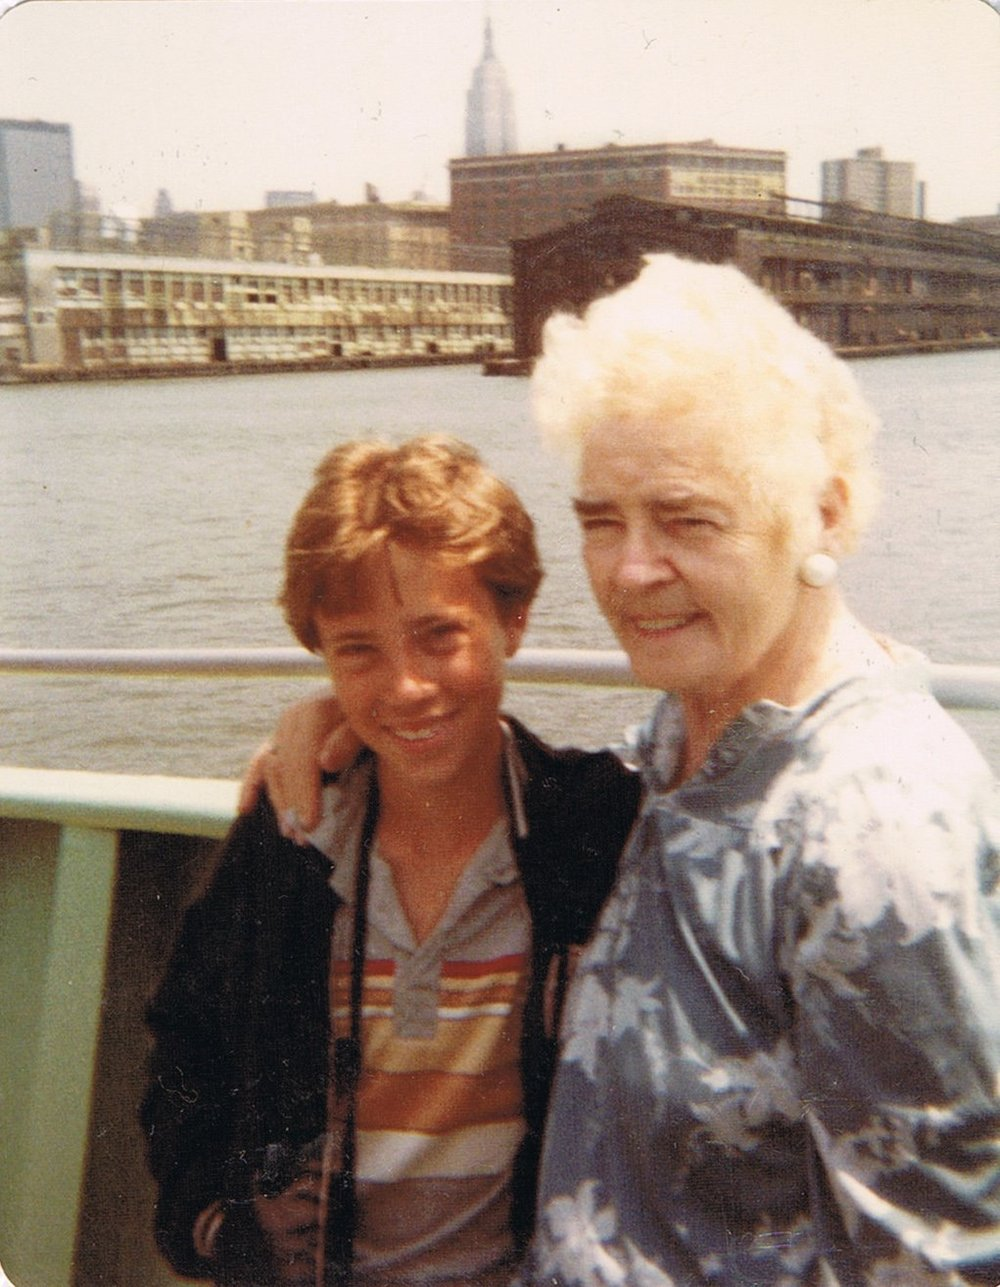 Marie's husband Paul, seen here with his grandmother in New York City, sometime in the 1980s.